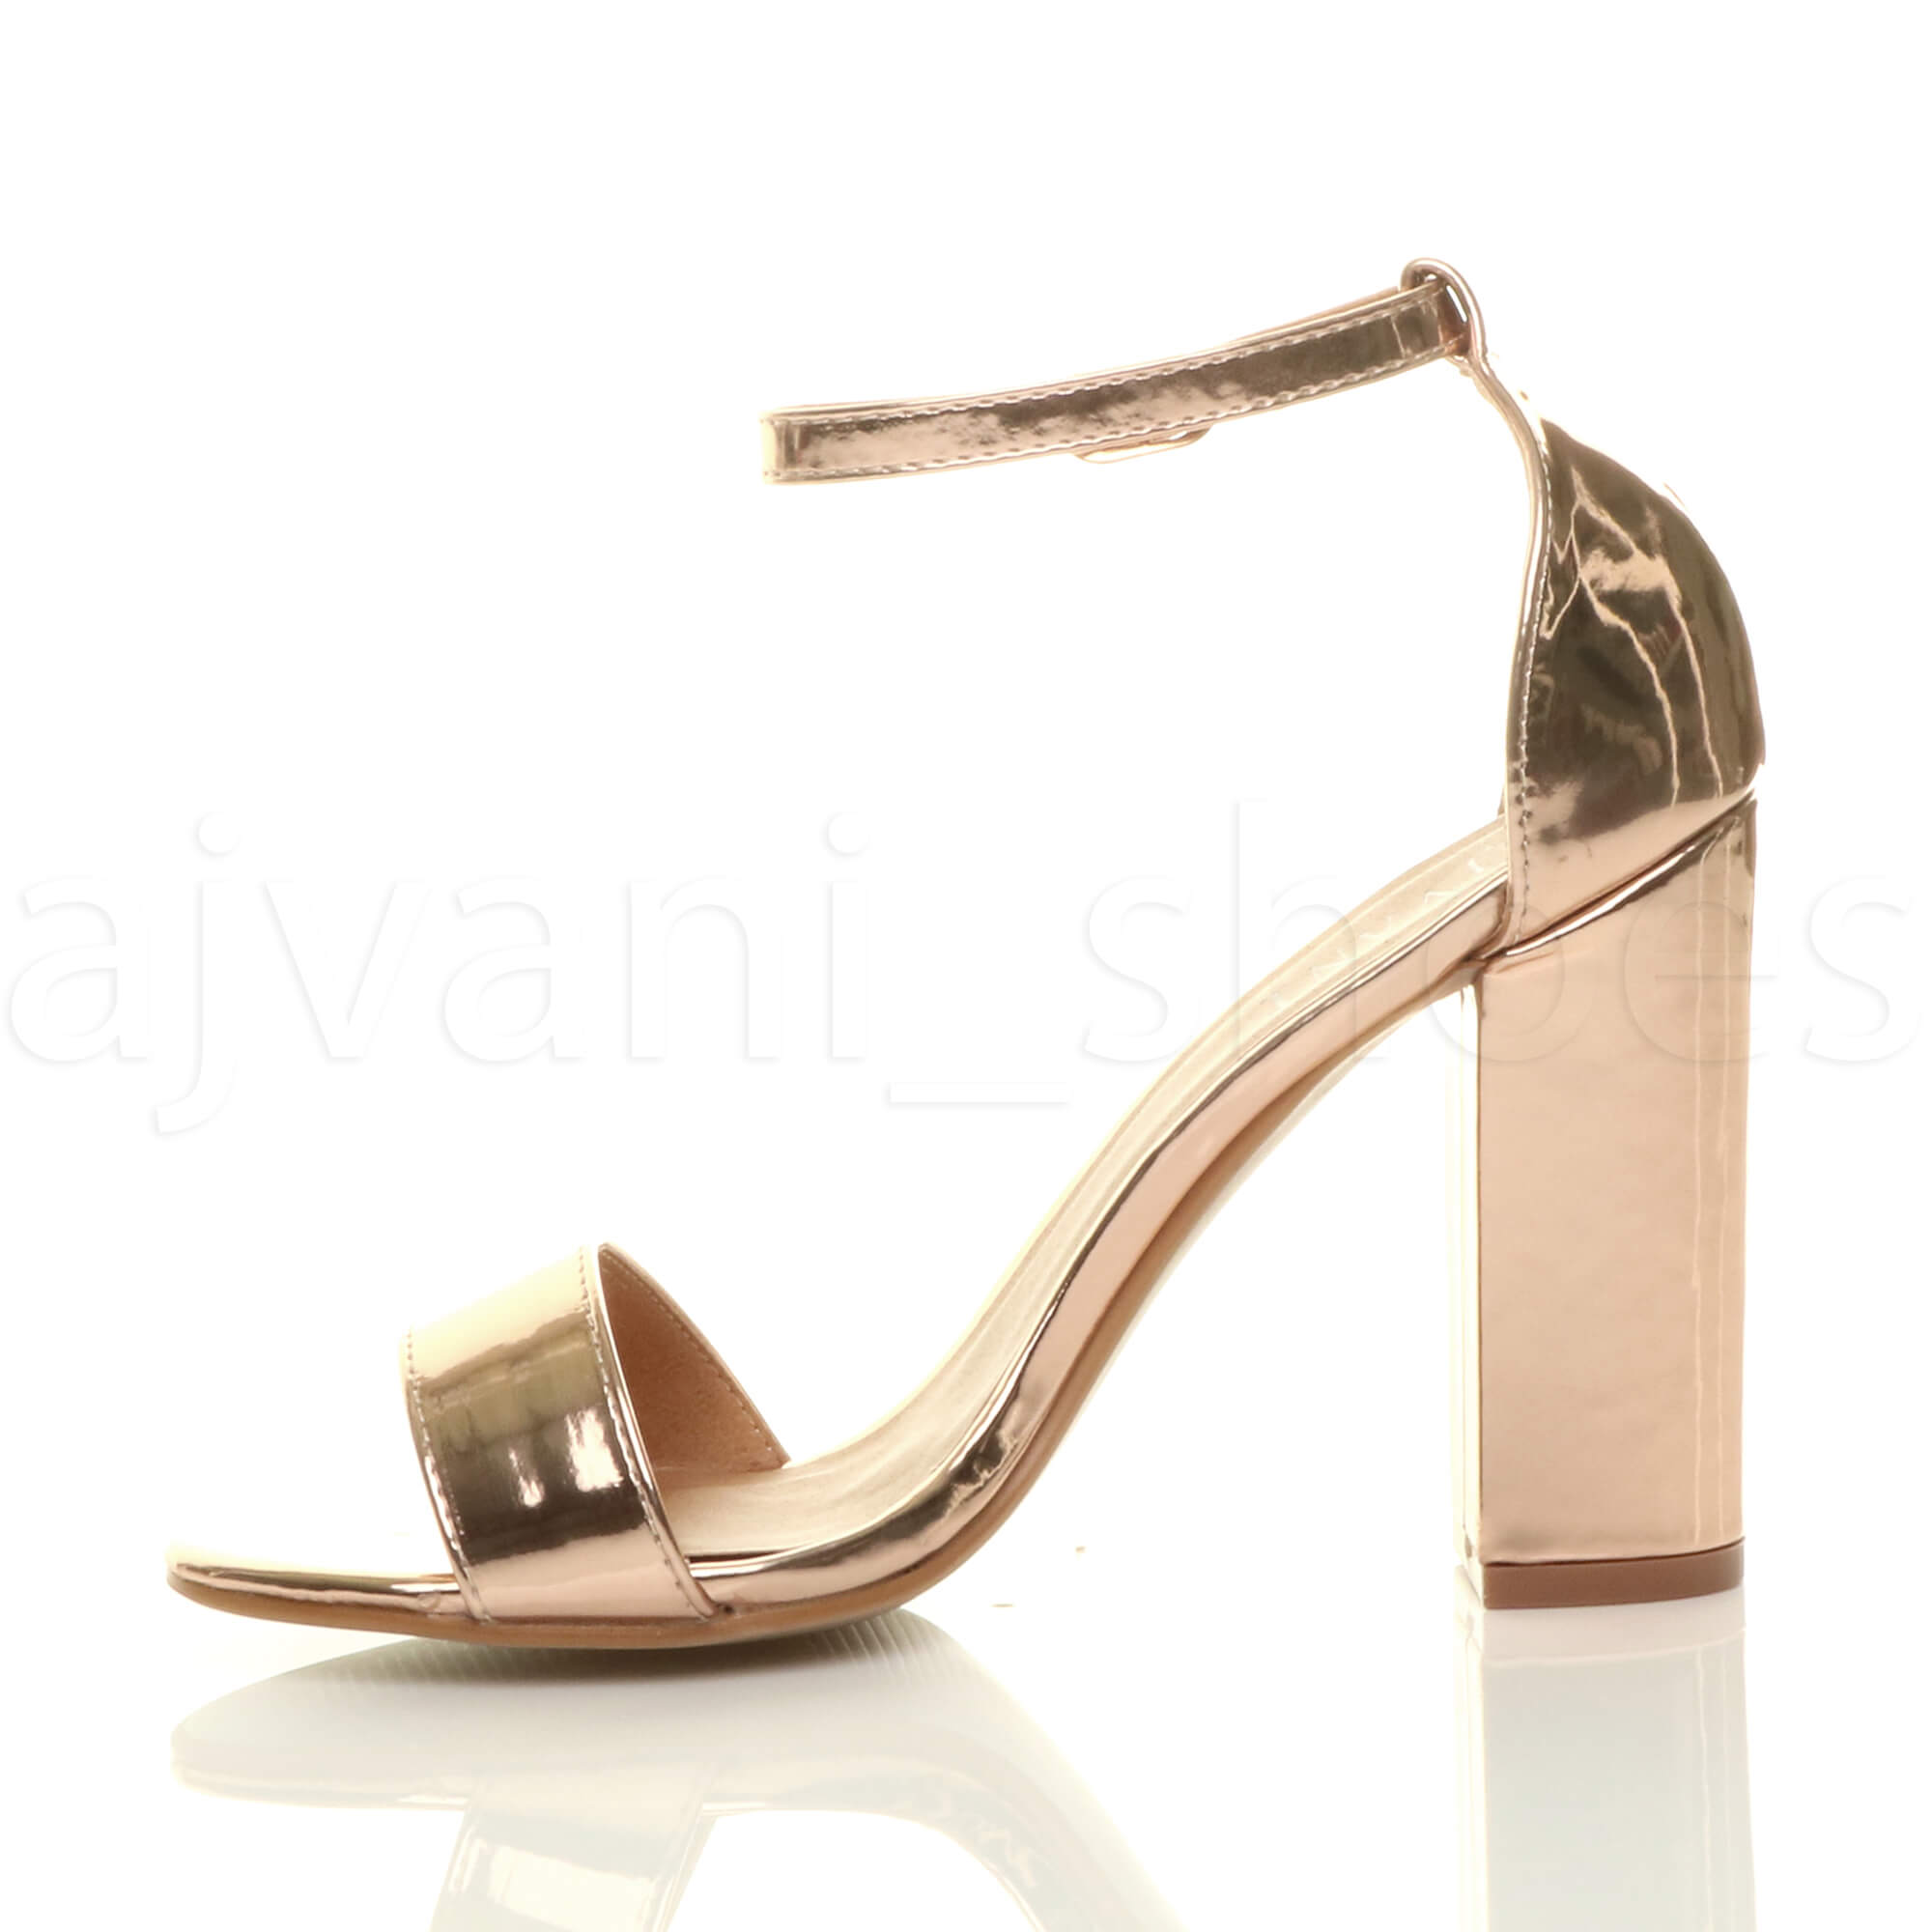 WOMENS-LADIES-BLOCK-HIGH-HEEL-ANKLE-STRAP-PEEP-TOE-STRAPPY-SANDALS-SHOES-SIZE thumbnail 141